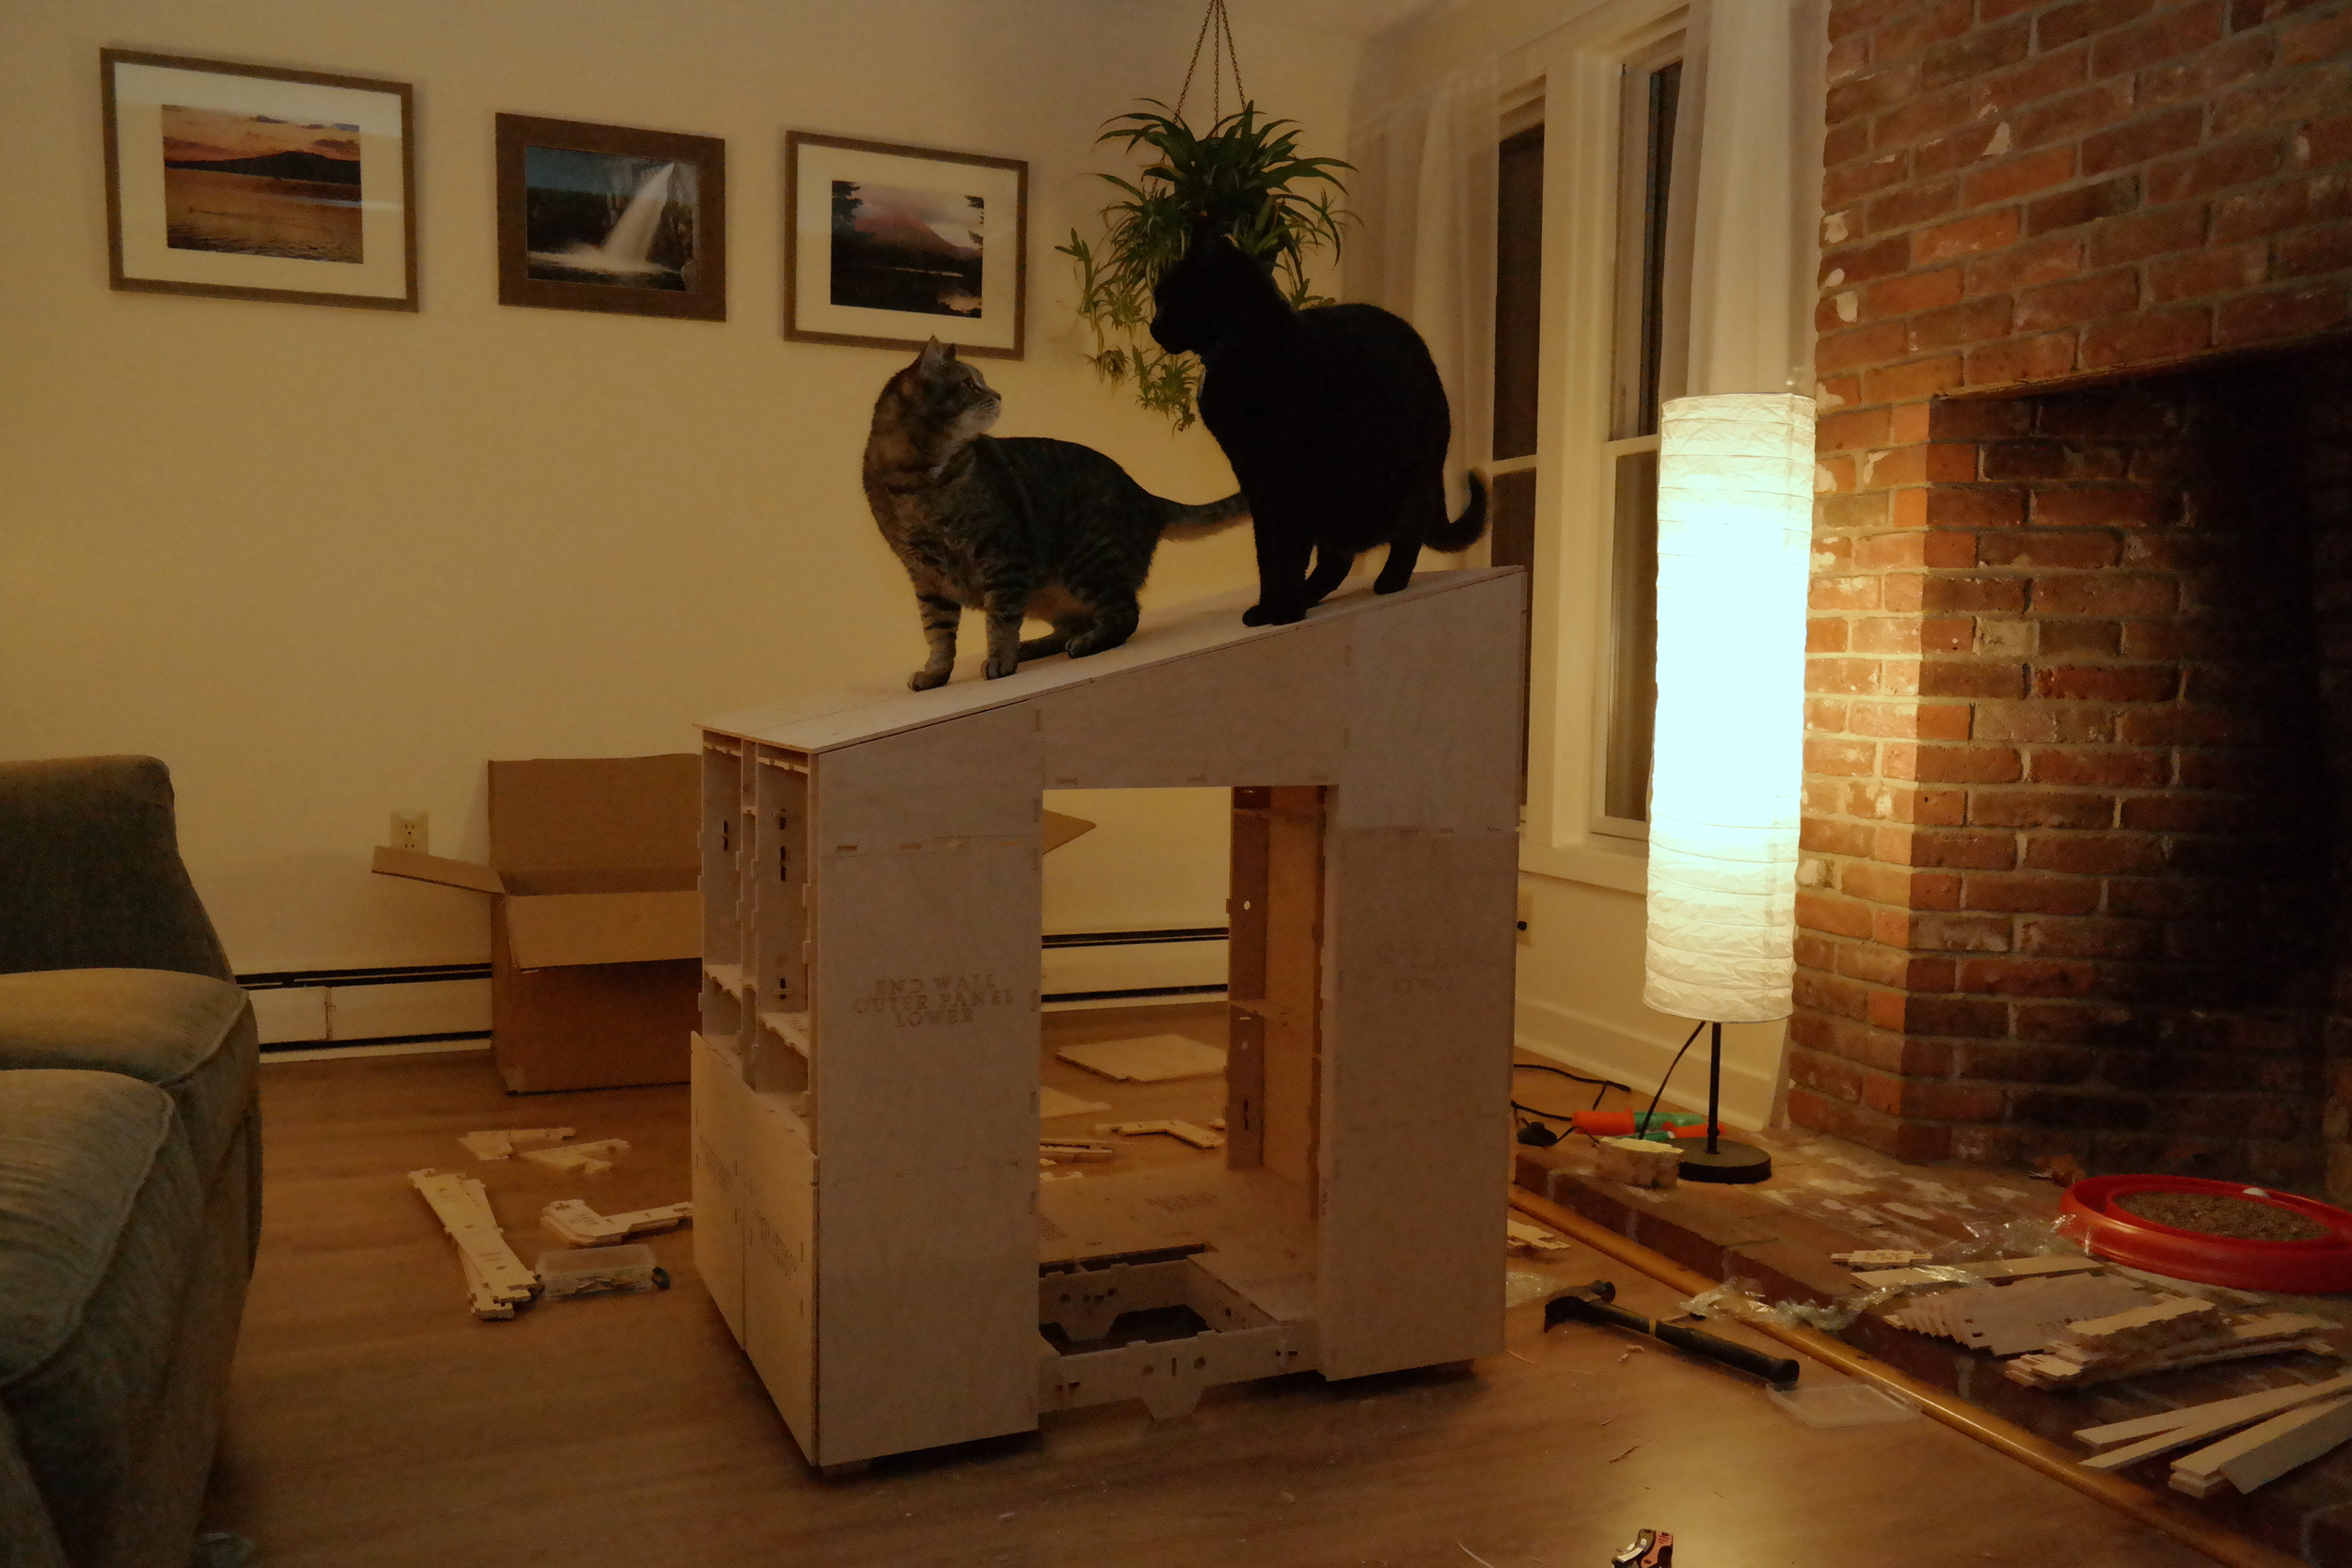 See! It's sturdy enough for two cats!